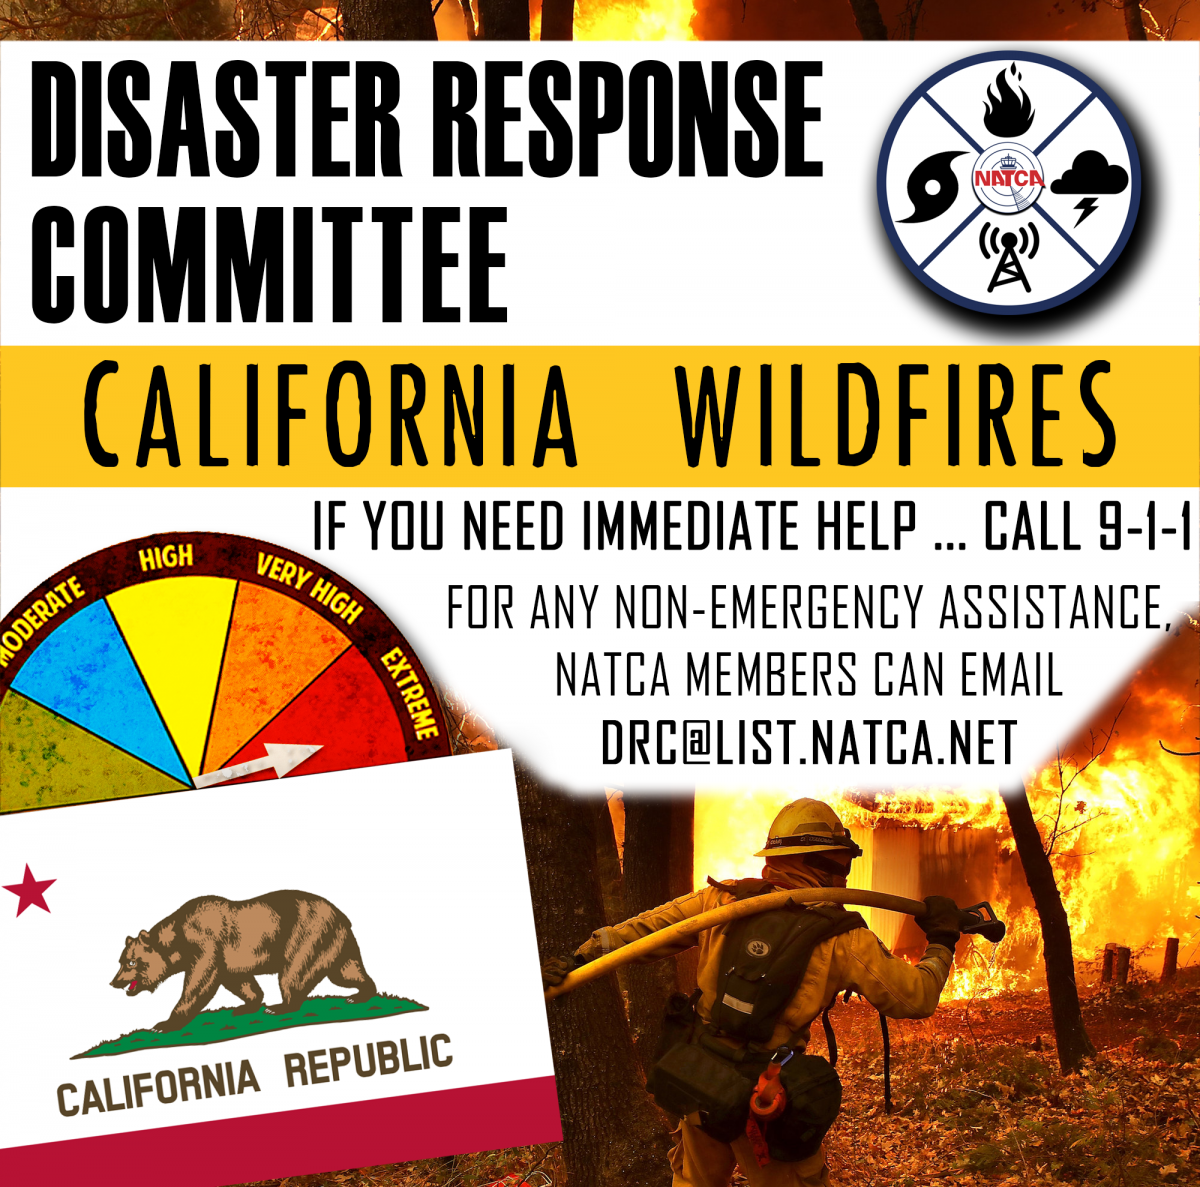 California Wildfires Help Graphic